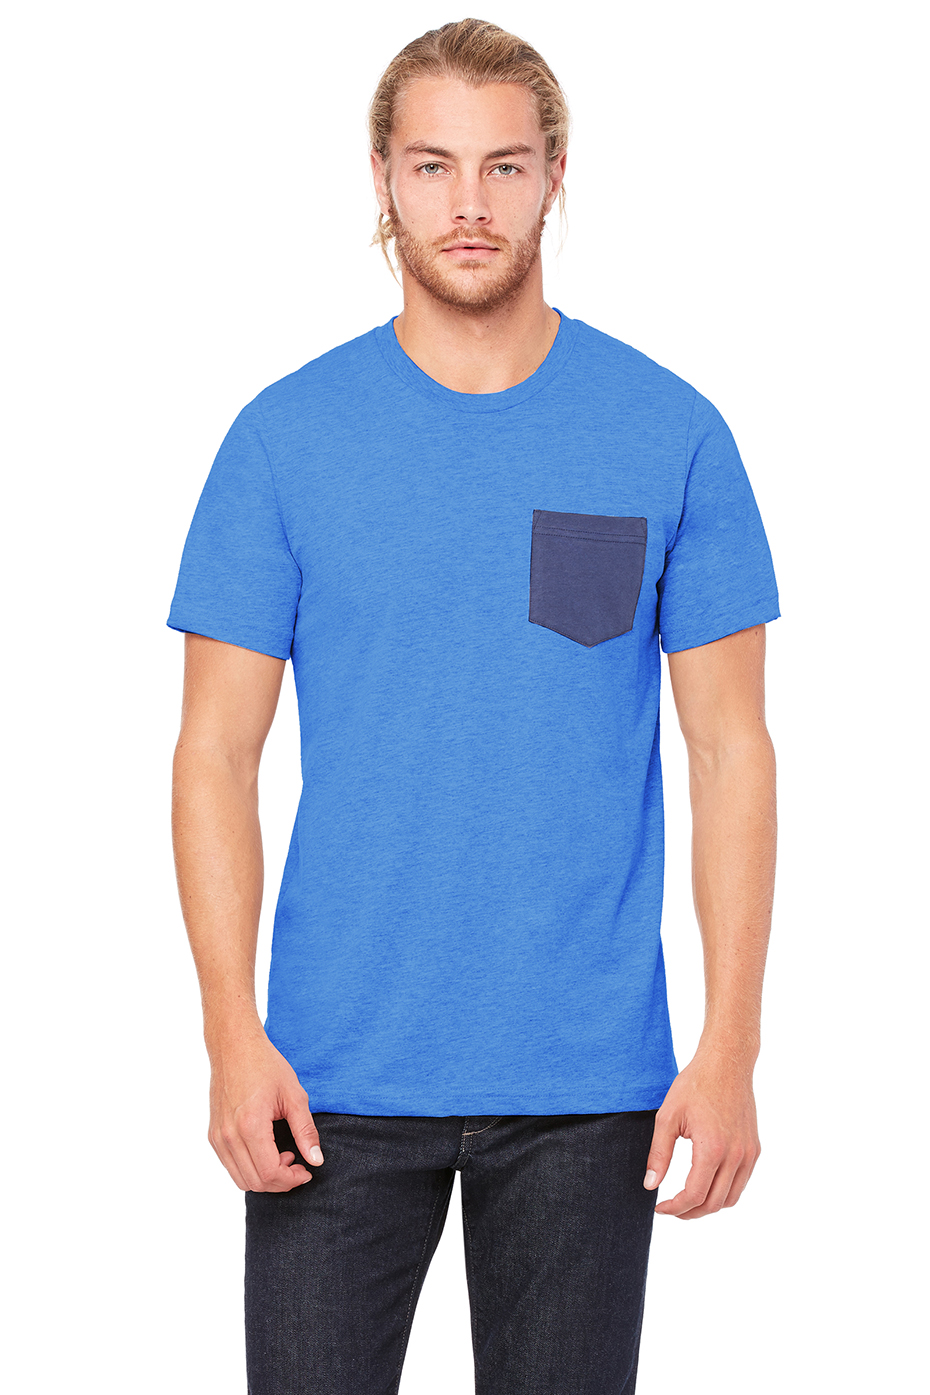 Find great deals on eBay for mens pocket t shirts. Shop with confidence.